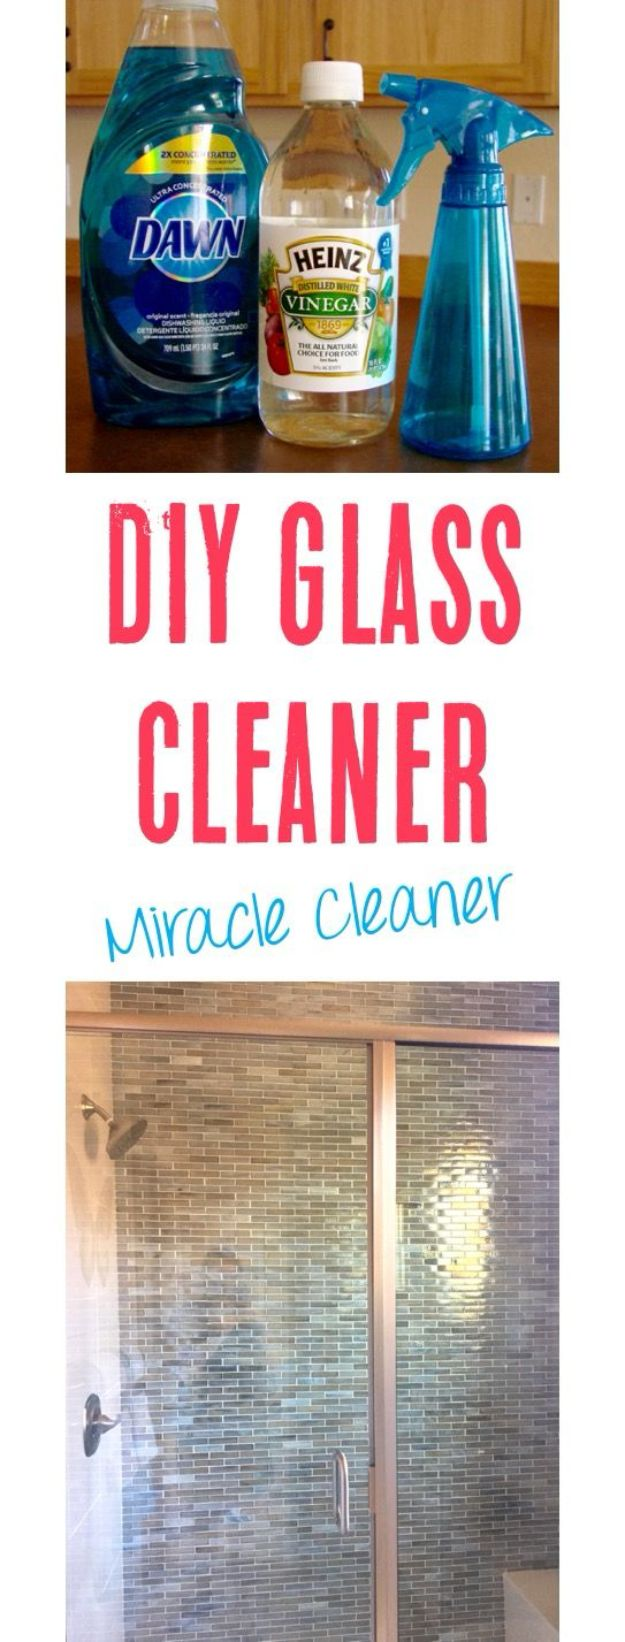 Homemade Cleaning Products - Homemade Glass Cleaner with Vinegar - DIY Cleaners With Recipe and Tutorial - Make DIY Natural and ll Purpose Cleaner Recipes for Home With Vinegar, Essential Oils